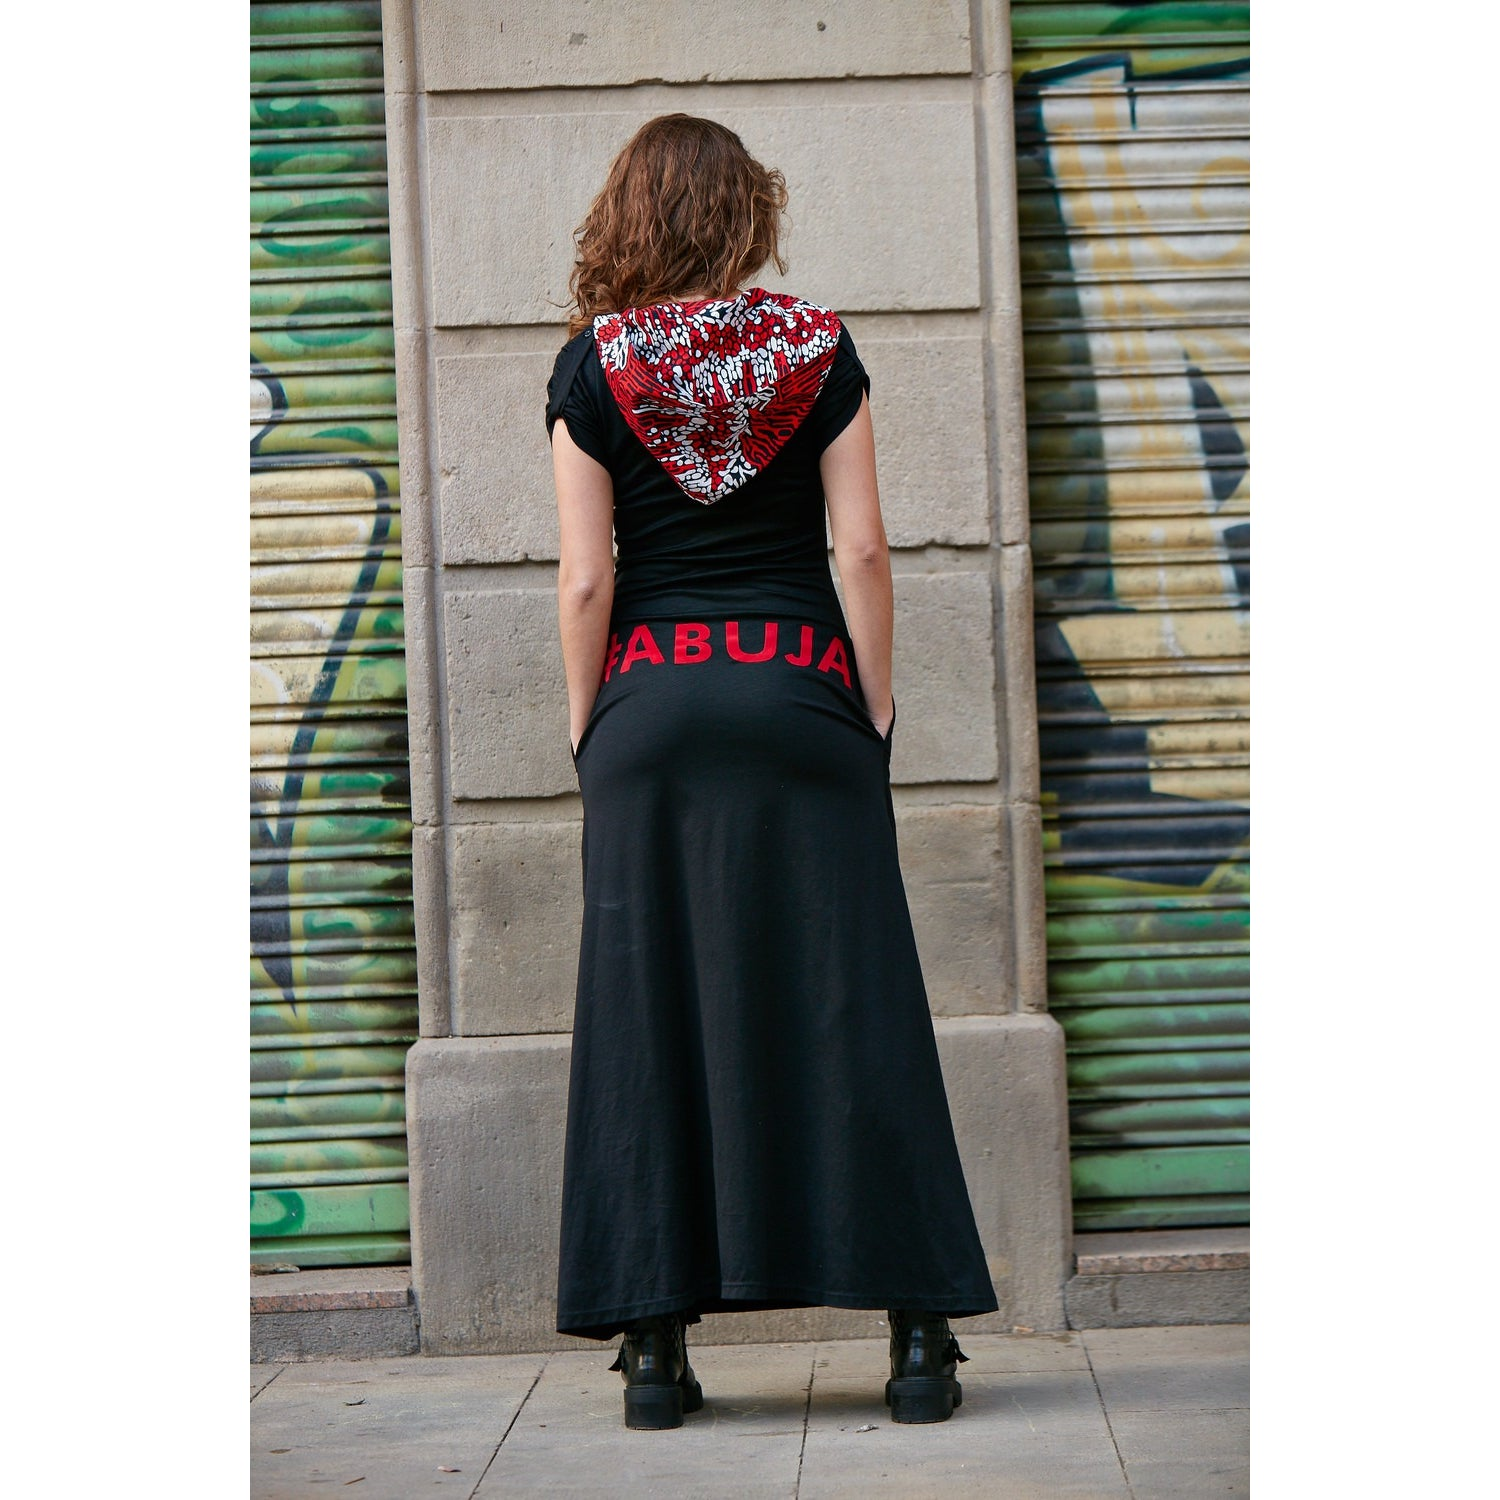 VELVET APPLIQUE SOMETHING DIFFERENT HOODED DRESS ABUJA